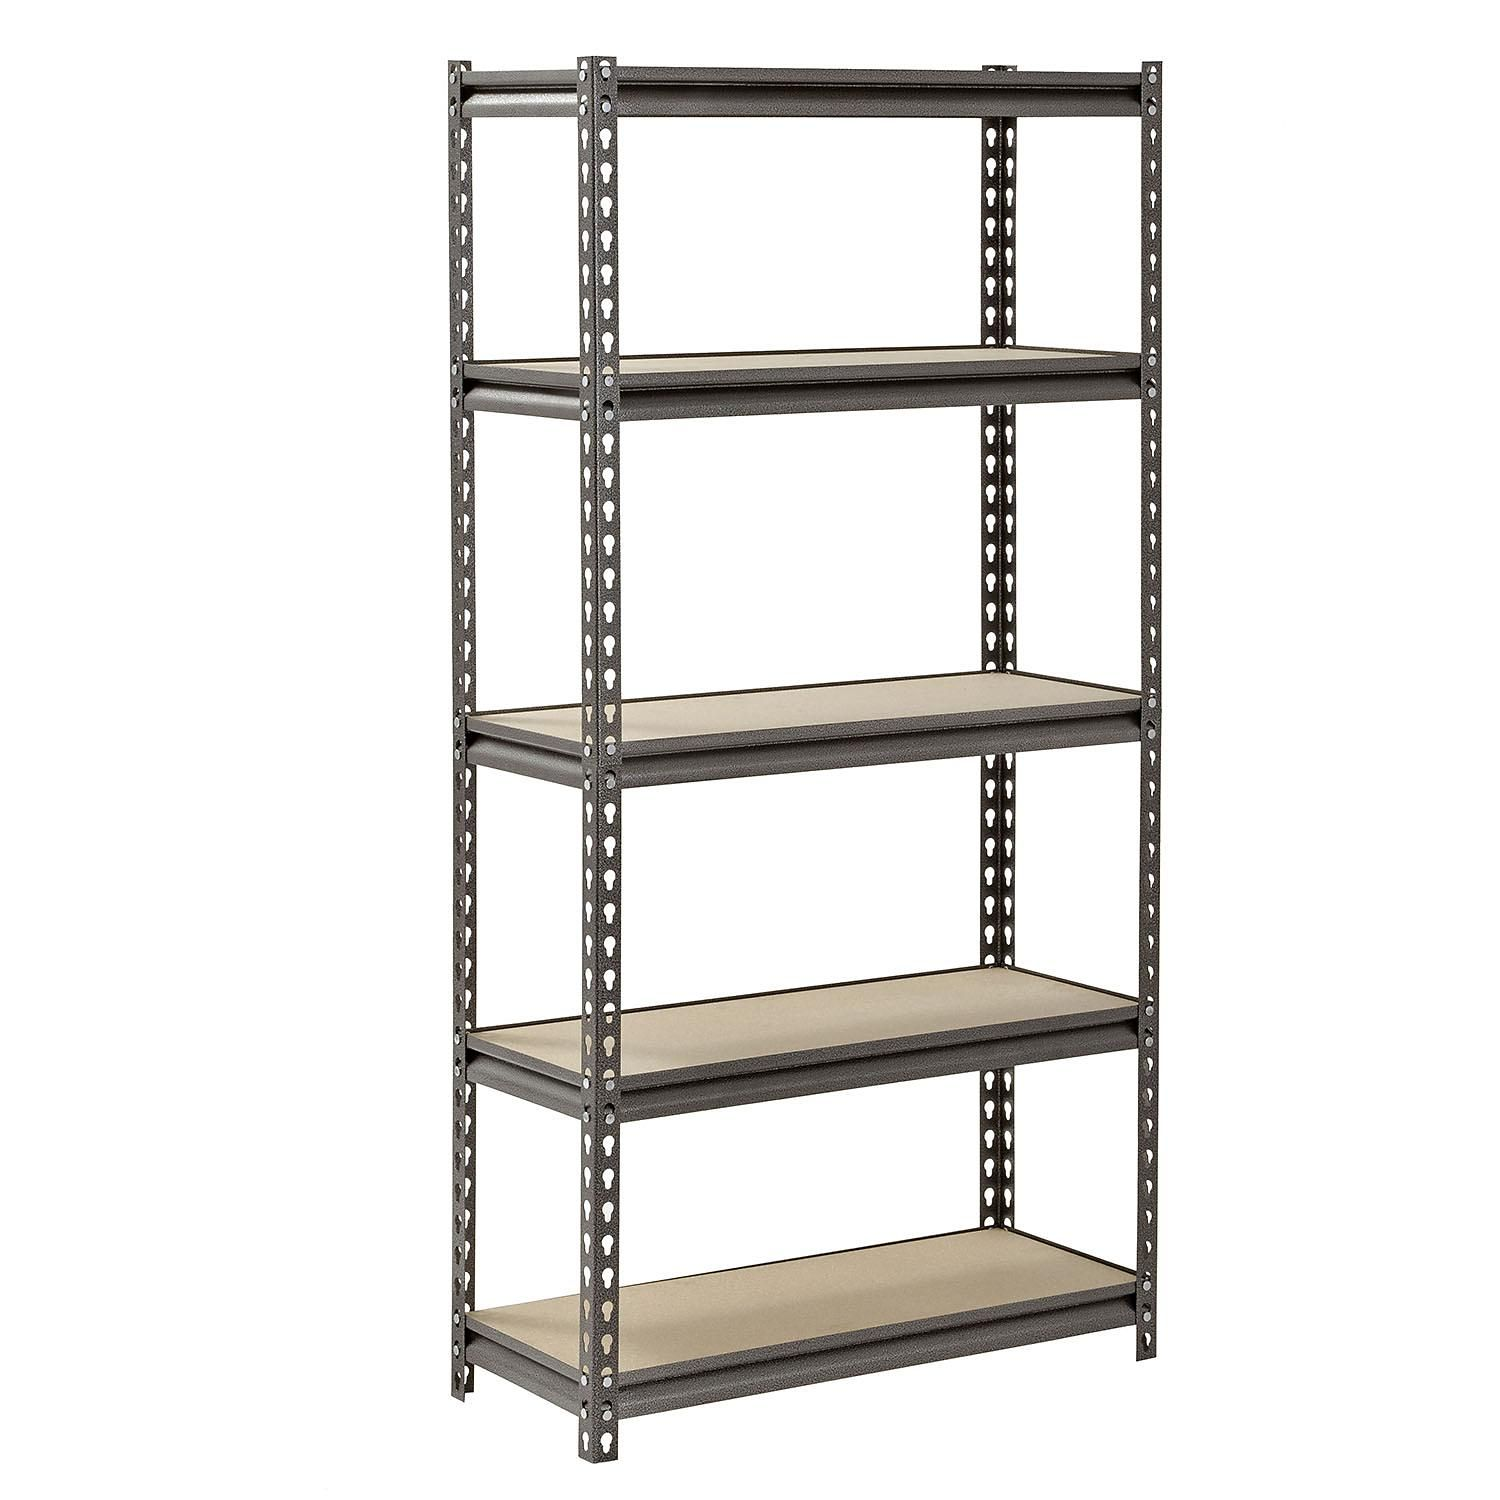 Muscle Rack 5 Level Heavy Duty Steel Shelving 30 W X 12 D X 60 H Sam S Club In 2020 Steel Shelving Steel Shelving Unit Steel Storage Rack